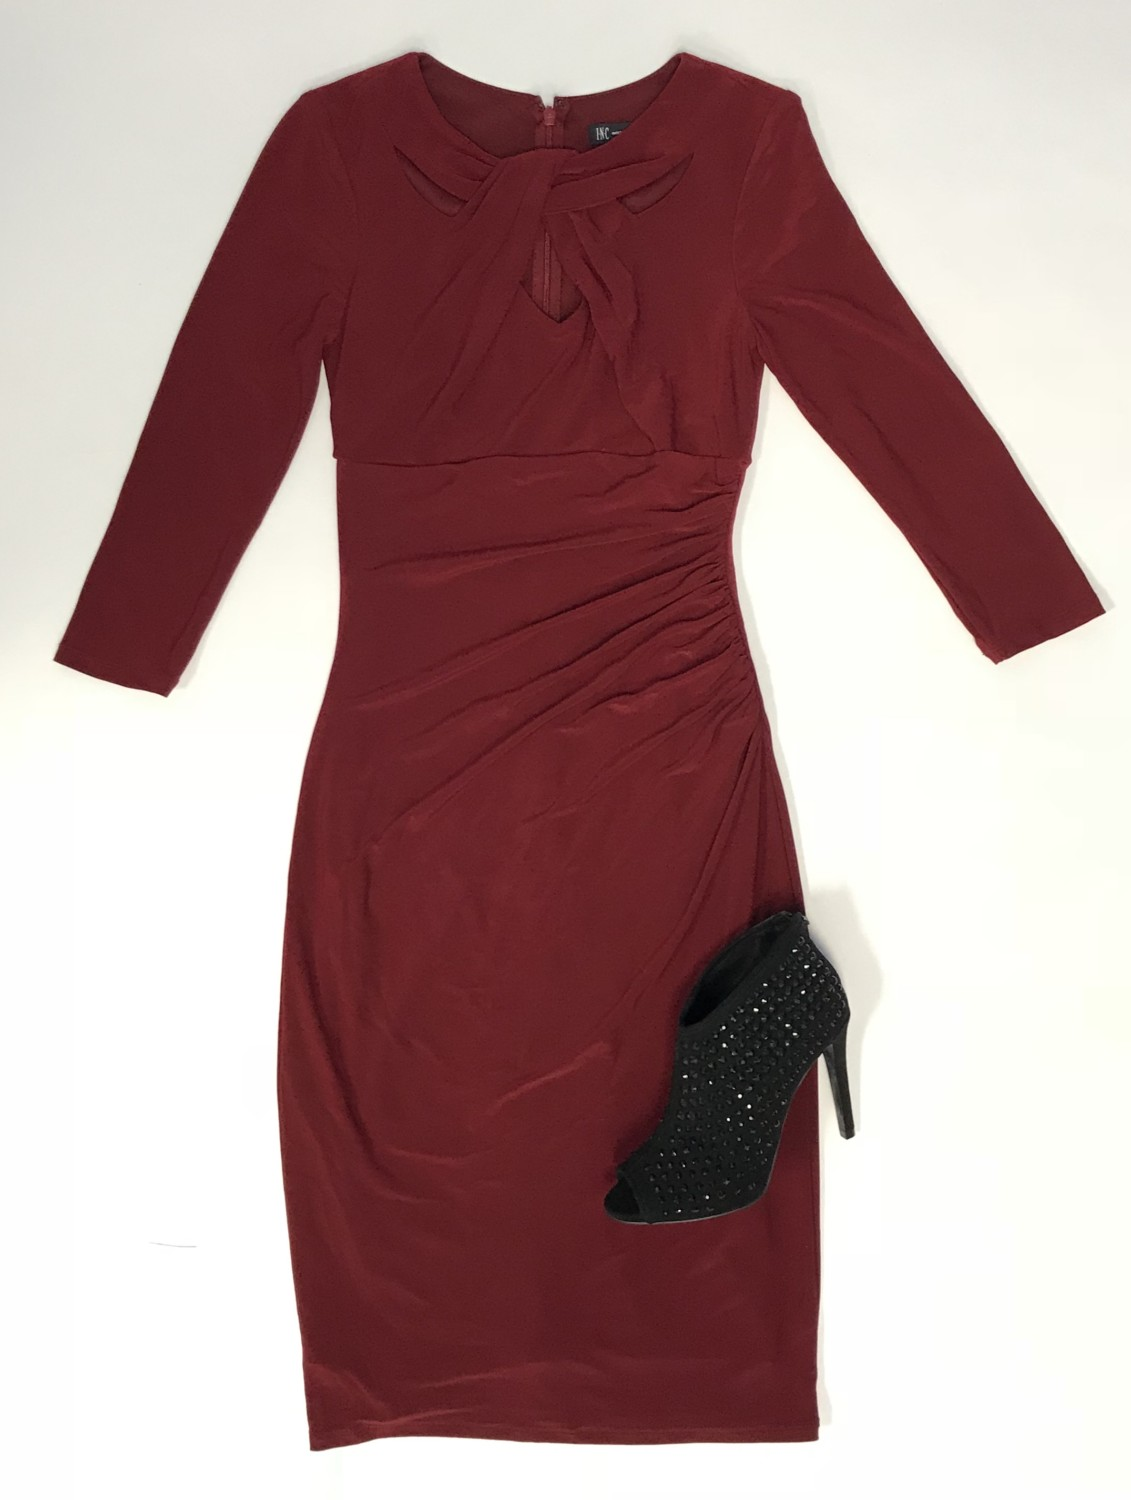 INC Dress – Original Retail: $99, CWS: $25